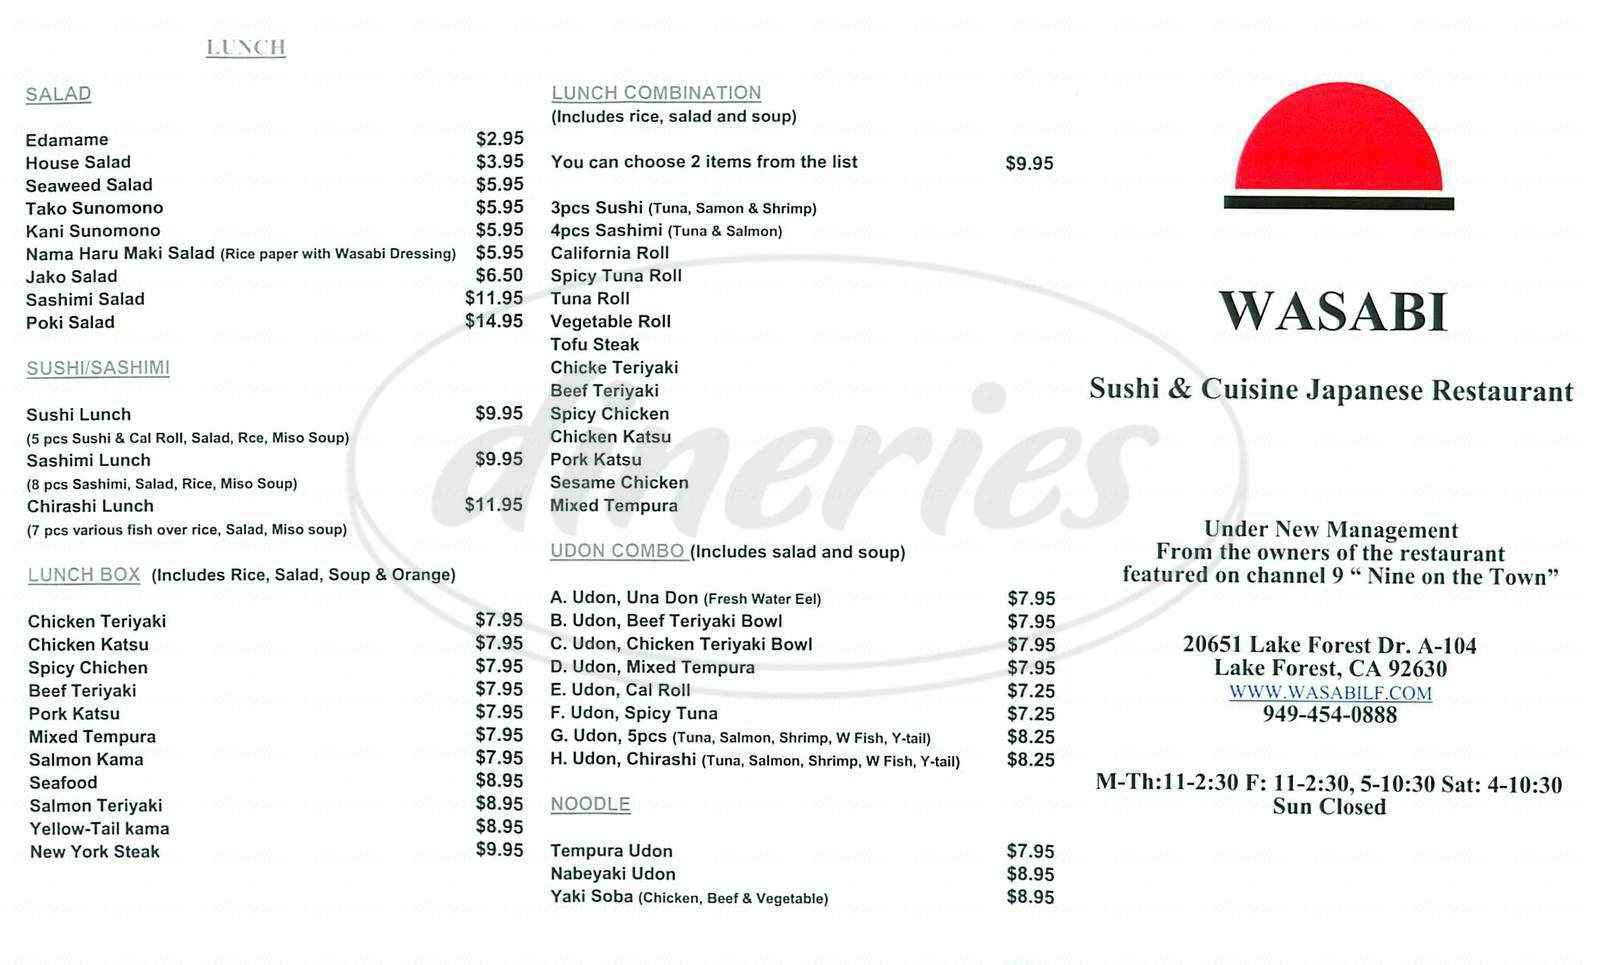 menu for Wasabi Sushi